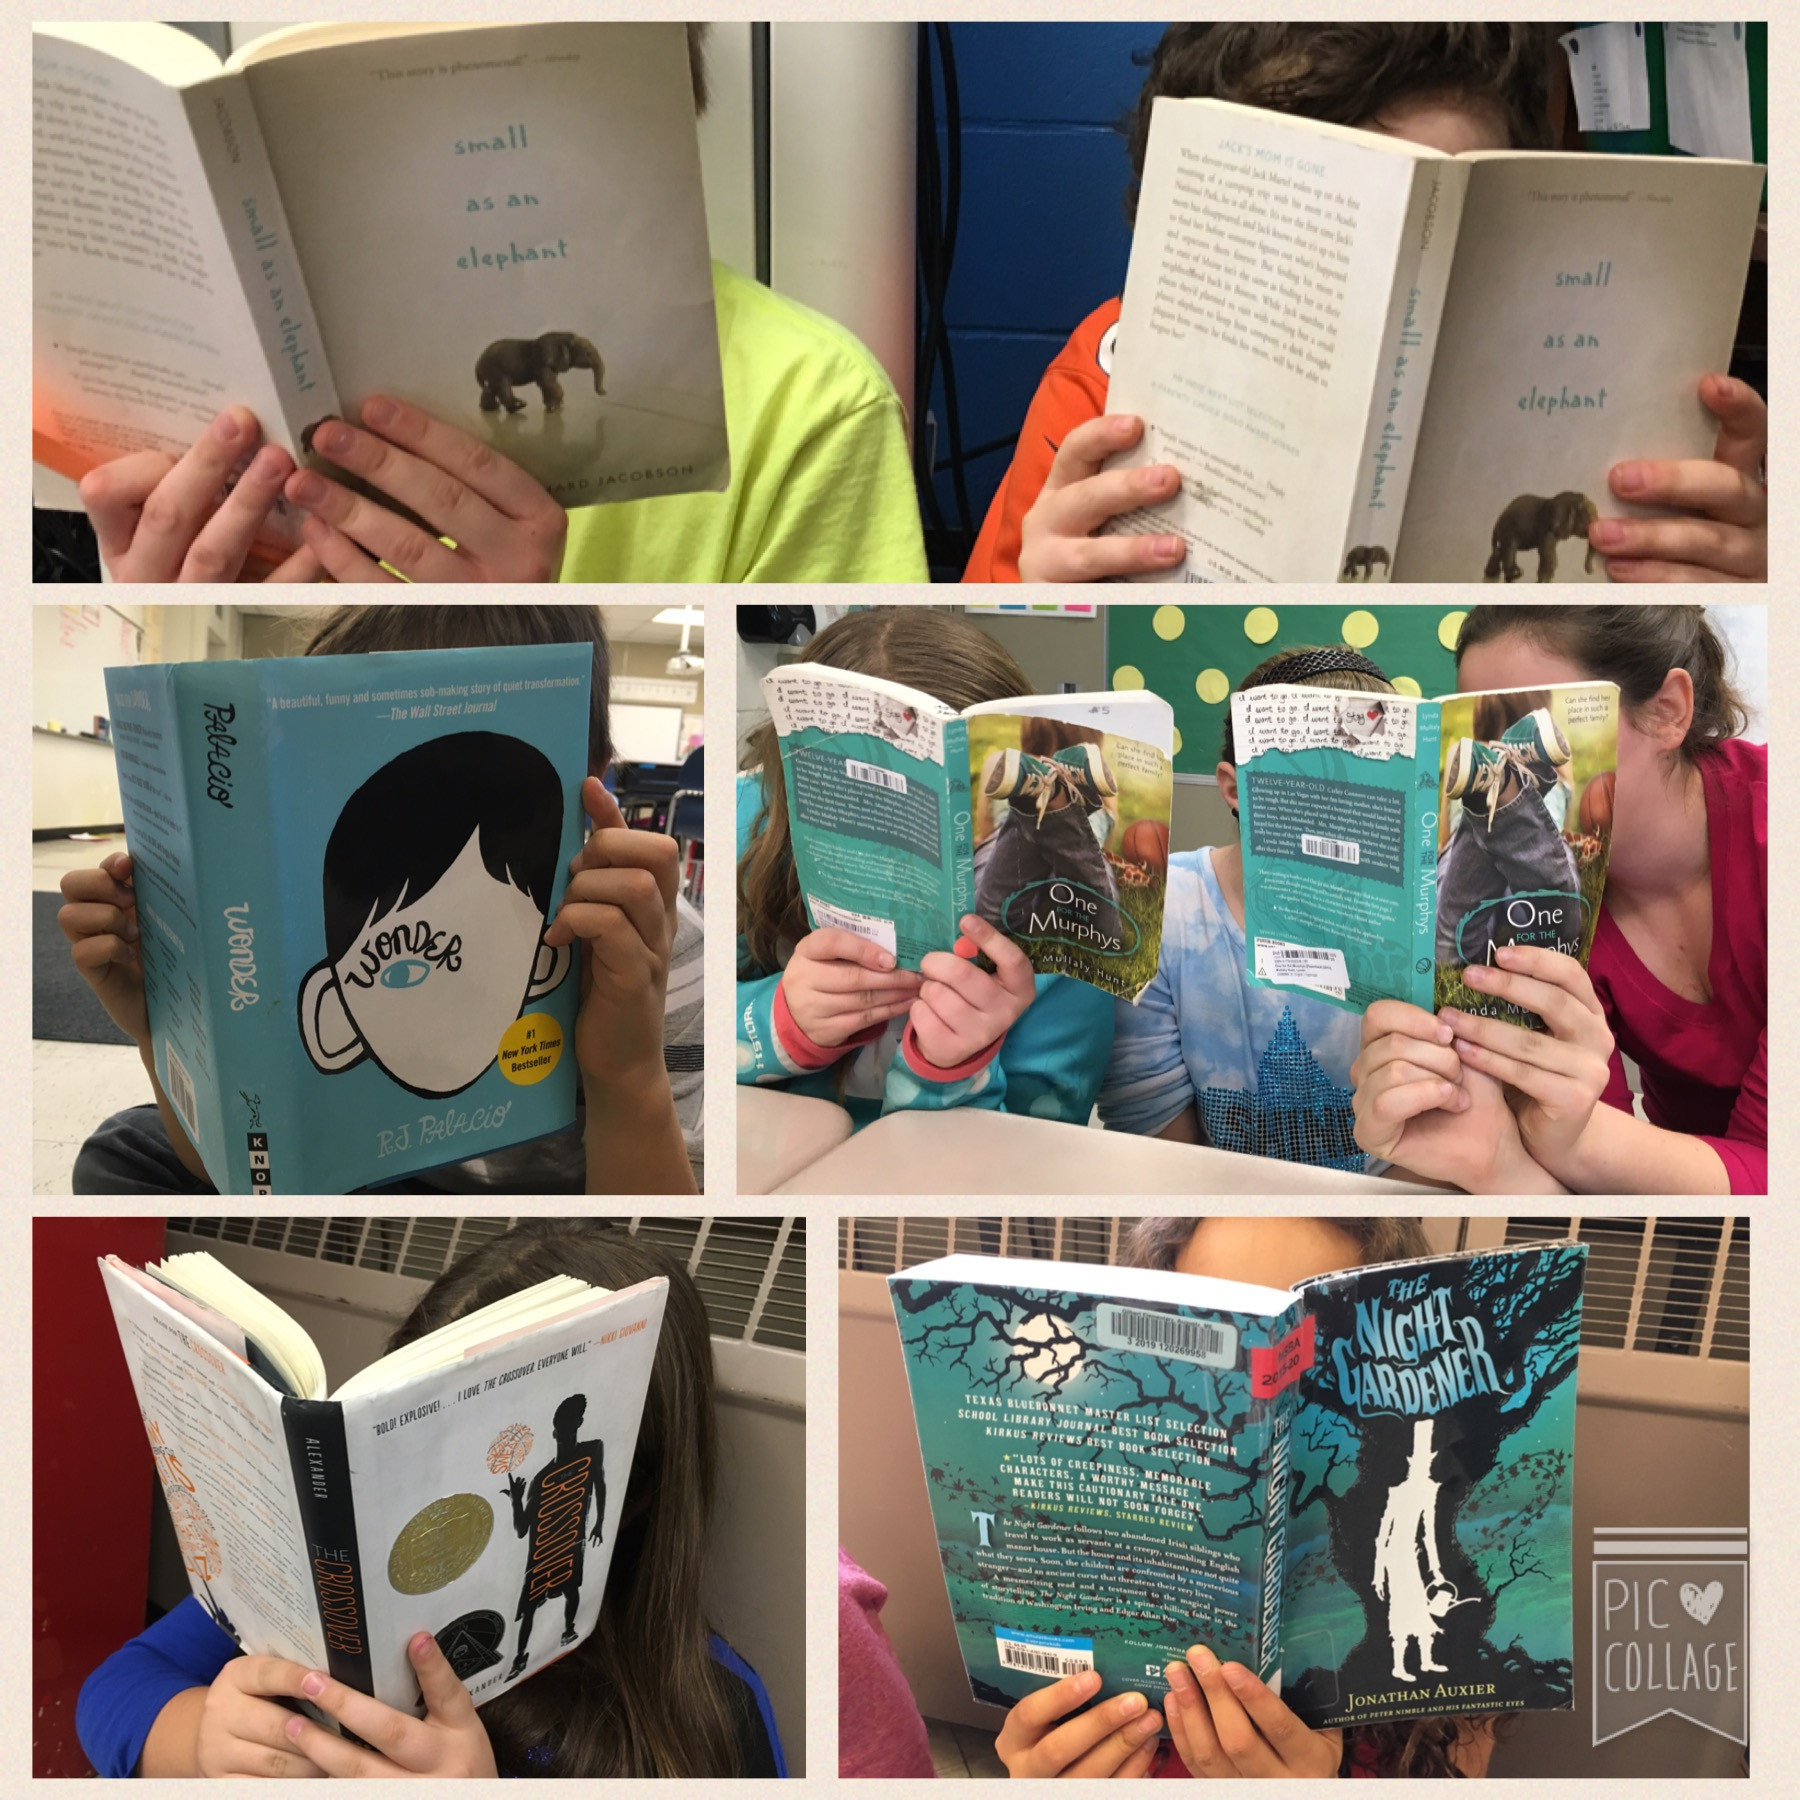 I Am What I Read: 5 Ways to Nurture Reading Identity by Paula Bourque